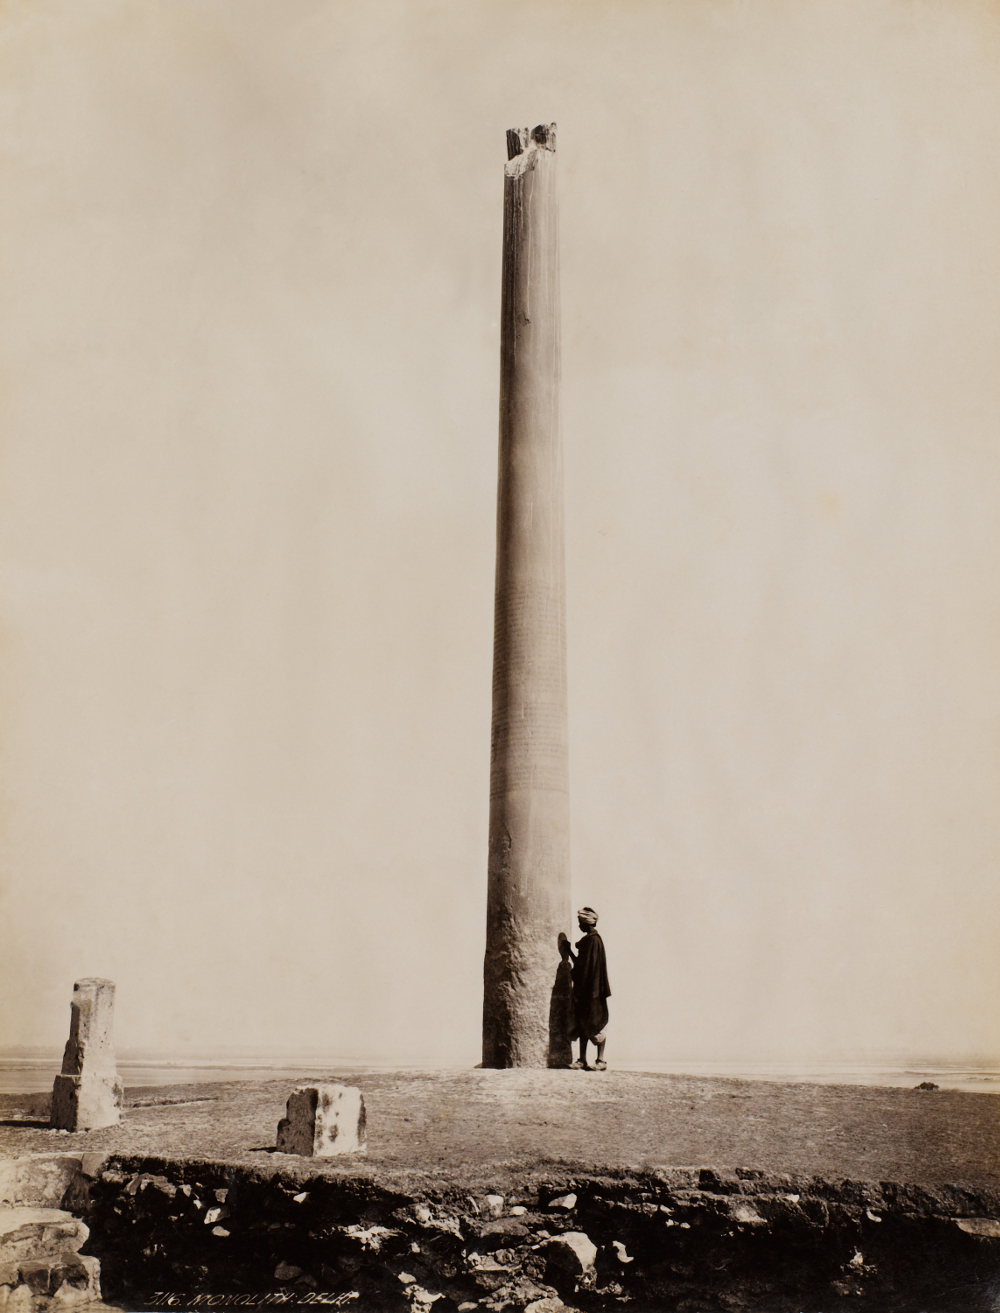 Friths Series - 'Firoz Shah's Lat near Delhi, Height 42 ft. 7 in.' (Asokan Pillar at Firoz Shah Jotla, Delhi)From The Harkness AlbumAlbumen Print, Photographer's Ref. 3116, about 1870Alkazi Foundation for the Arts, New Delhi